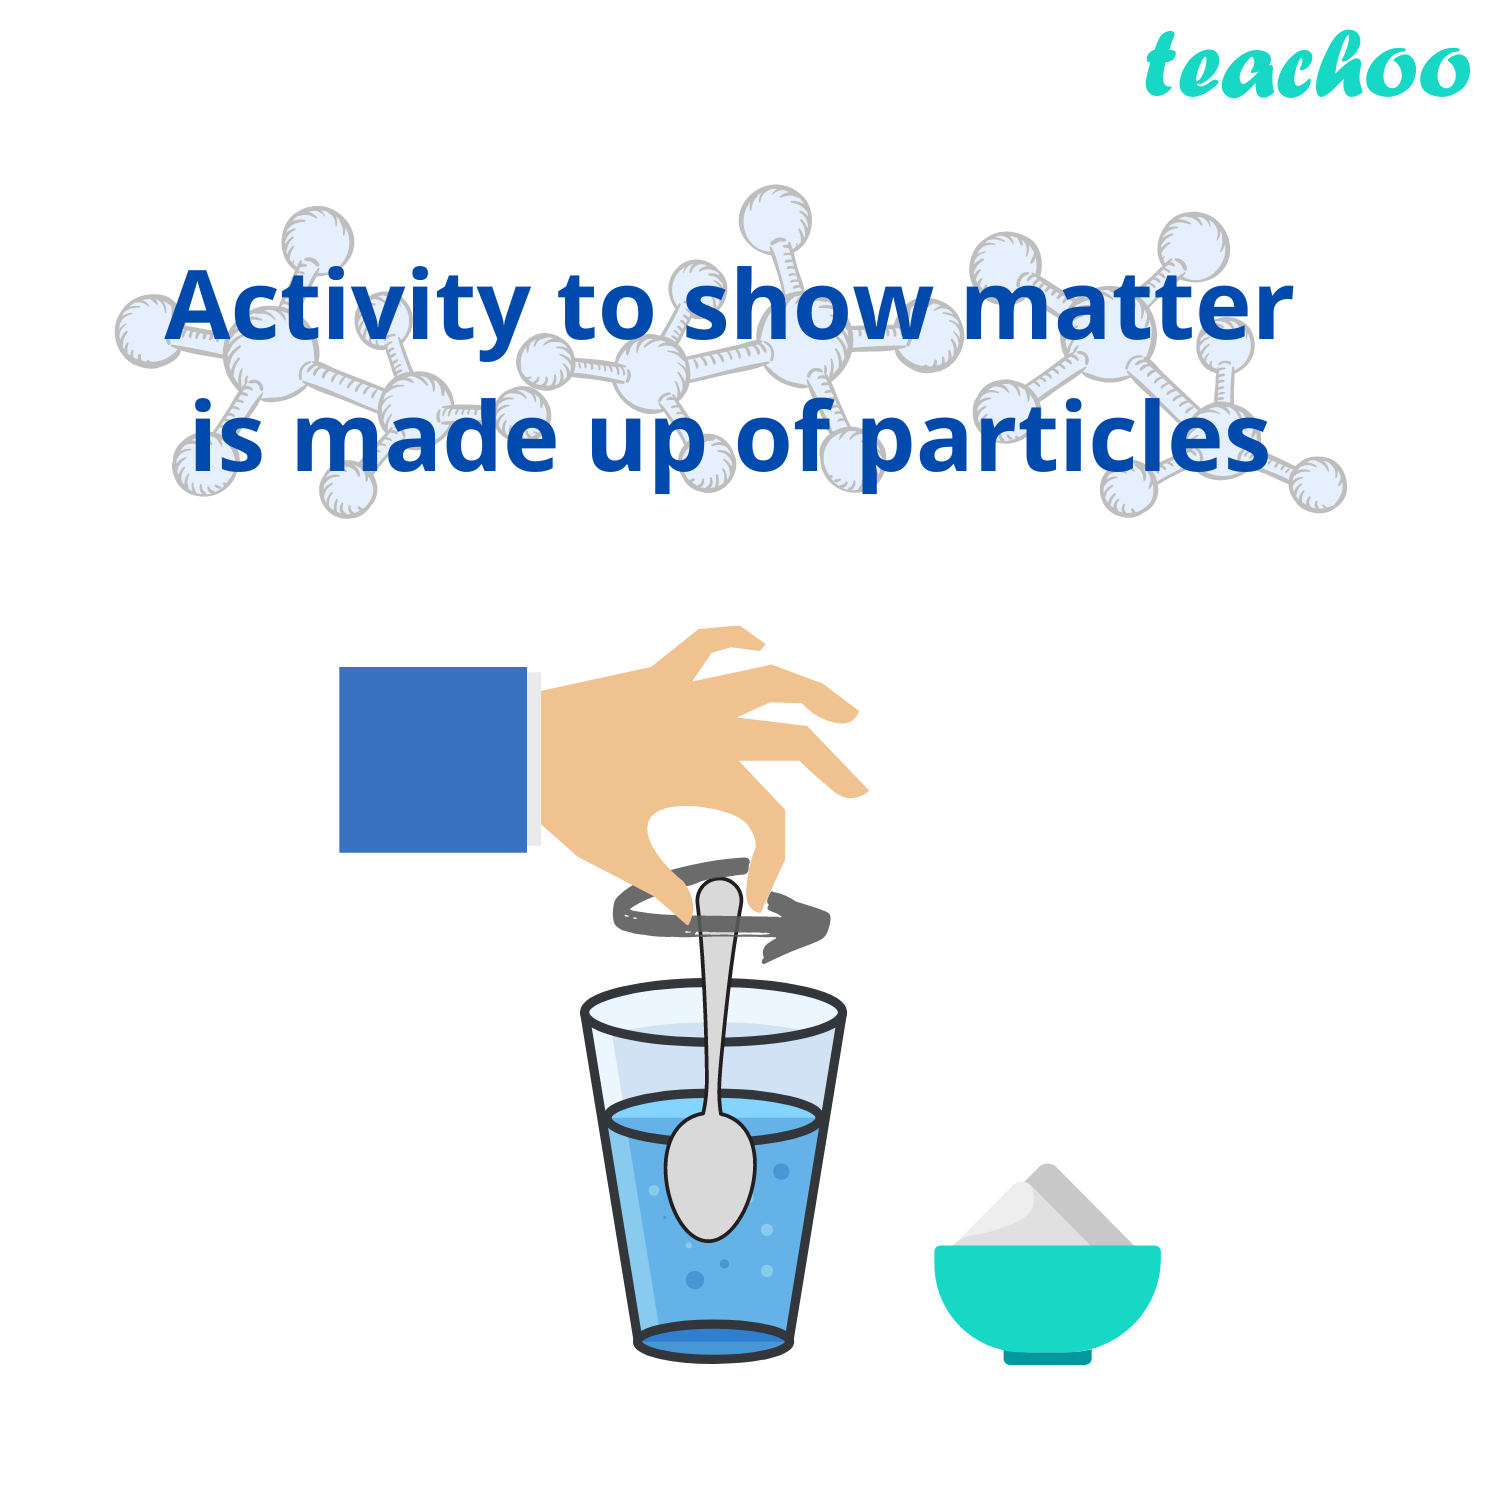 Activity to show matter is made up of particles - Teachoo.png